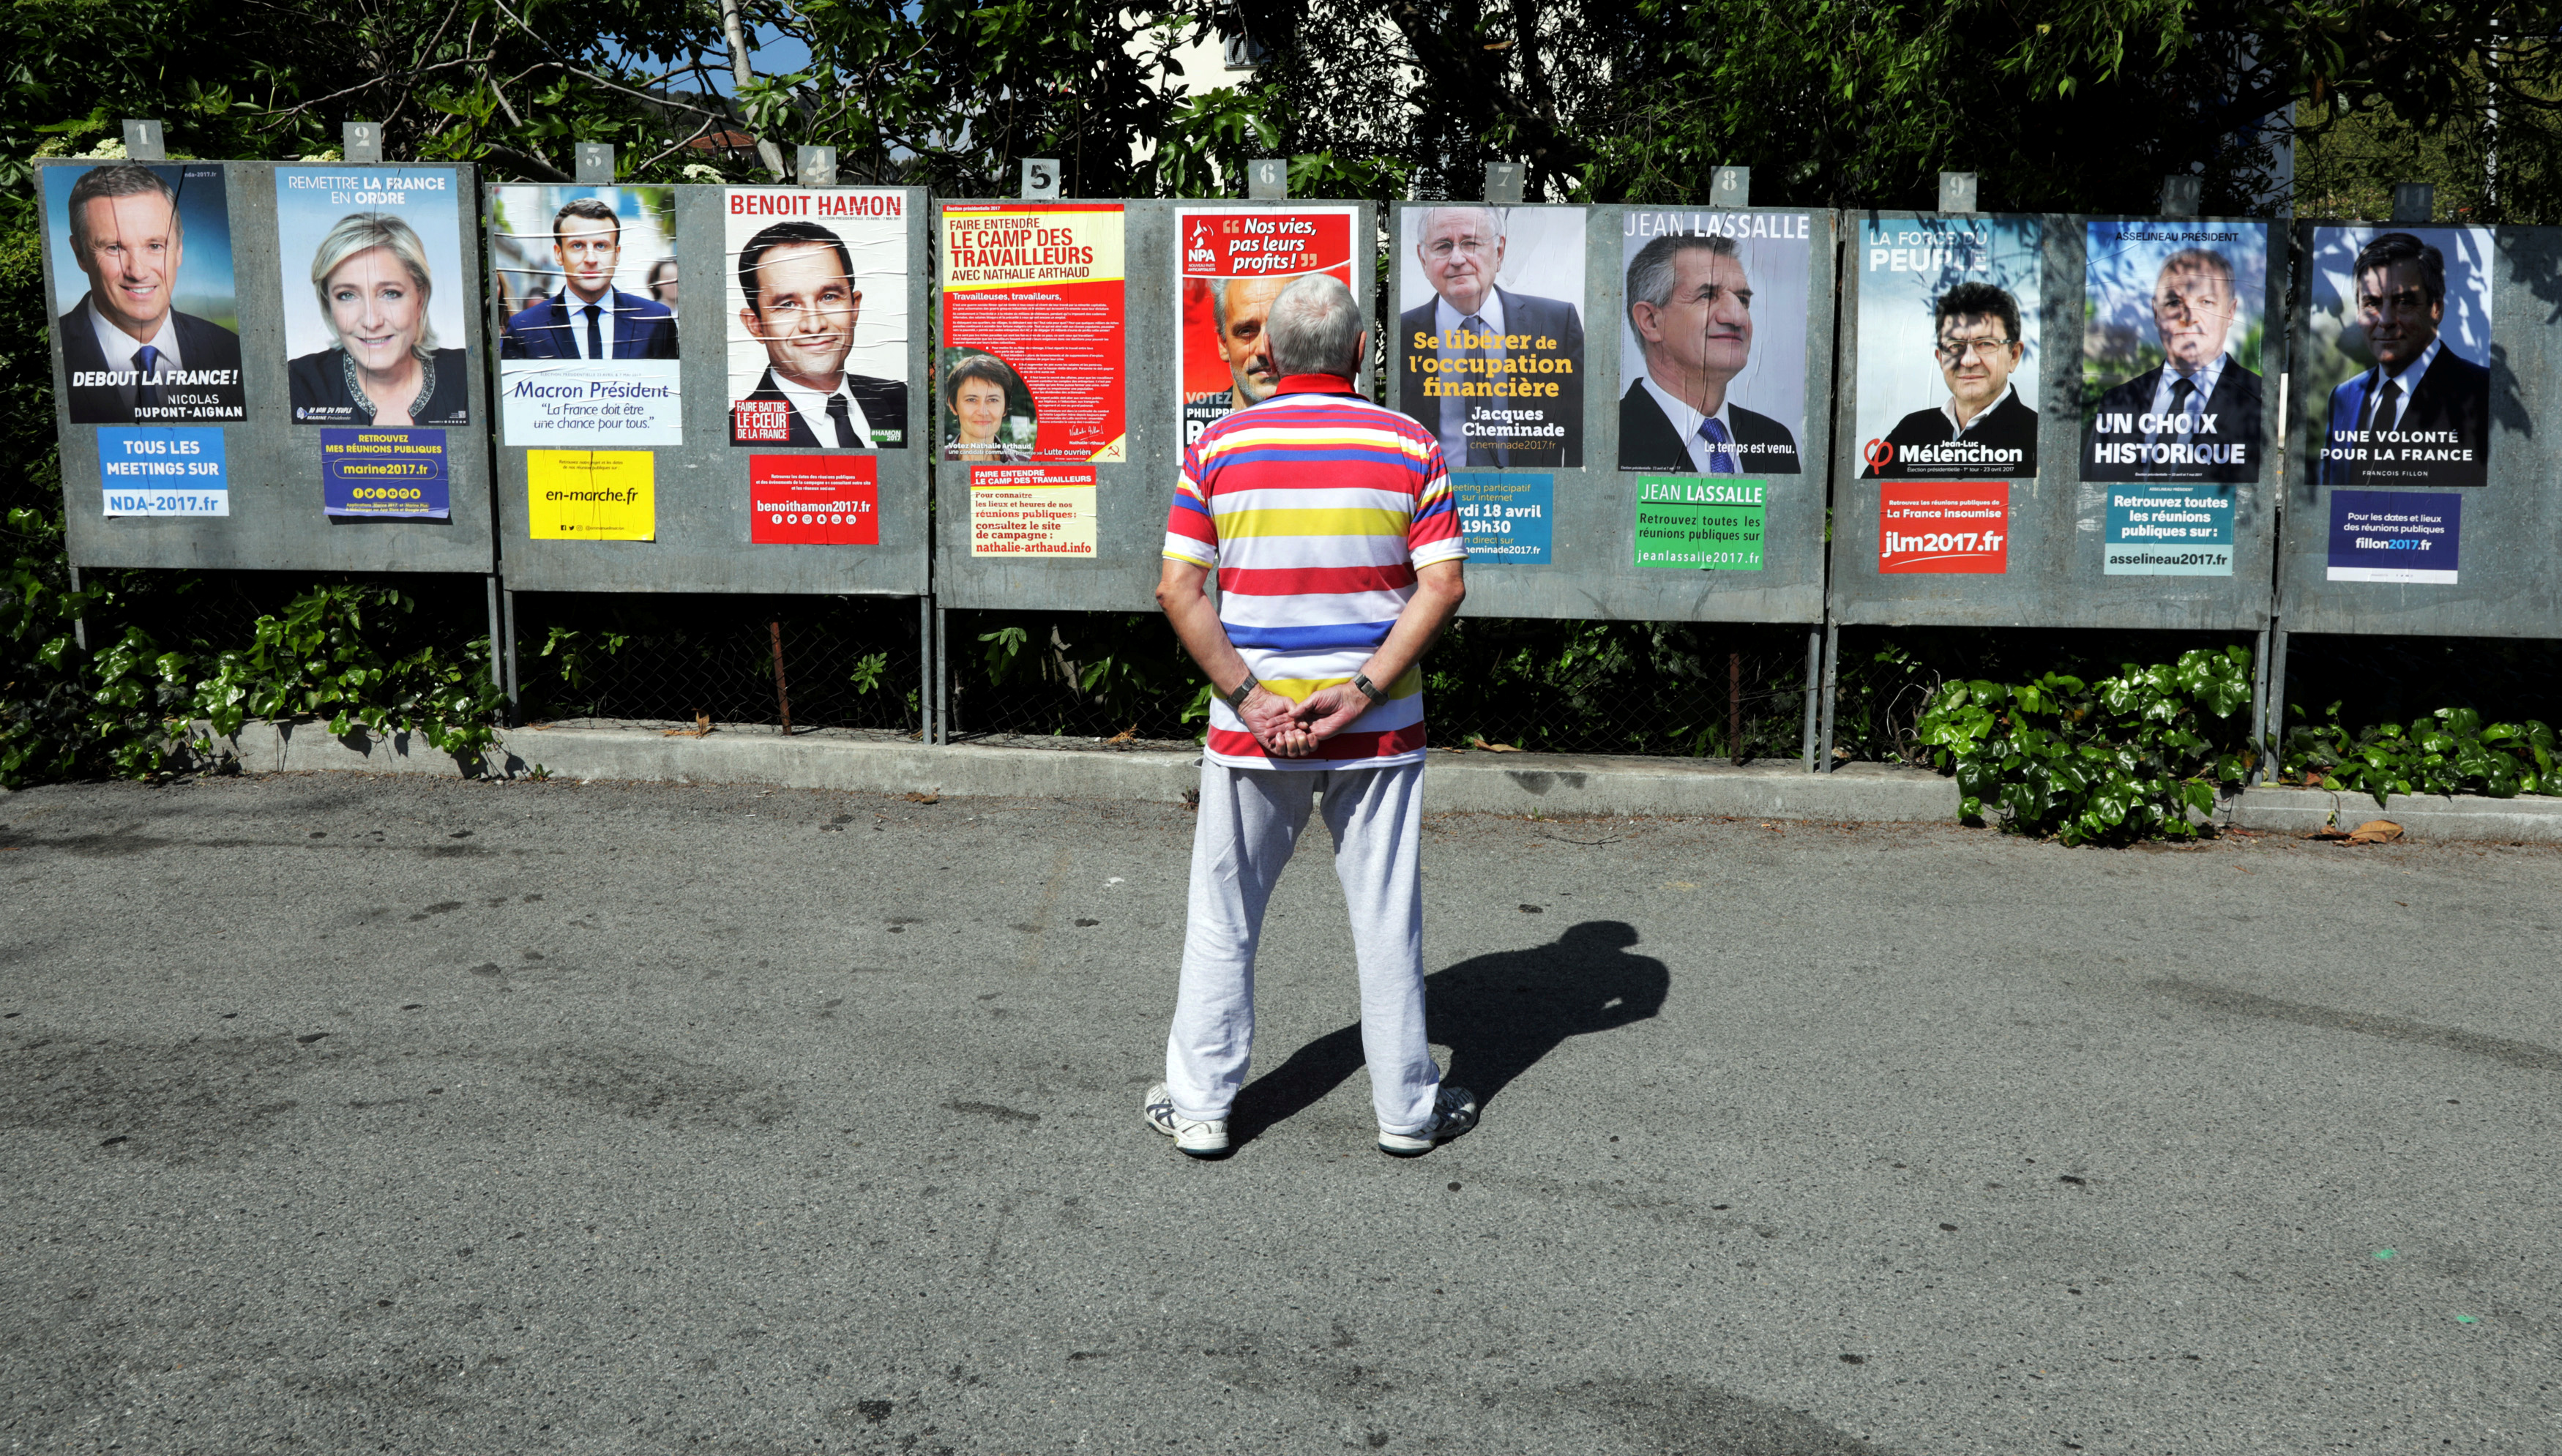 A man looks at campaign posters of the 11th candidates who are running in the 2017 French presidential election, in Saint Andre de La Roche